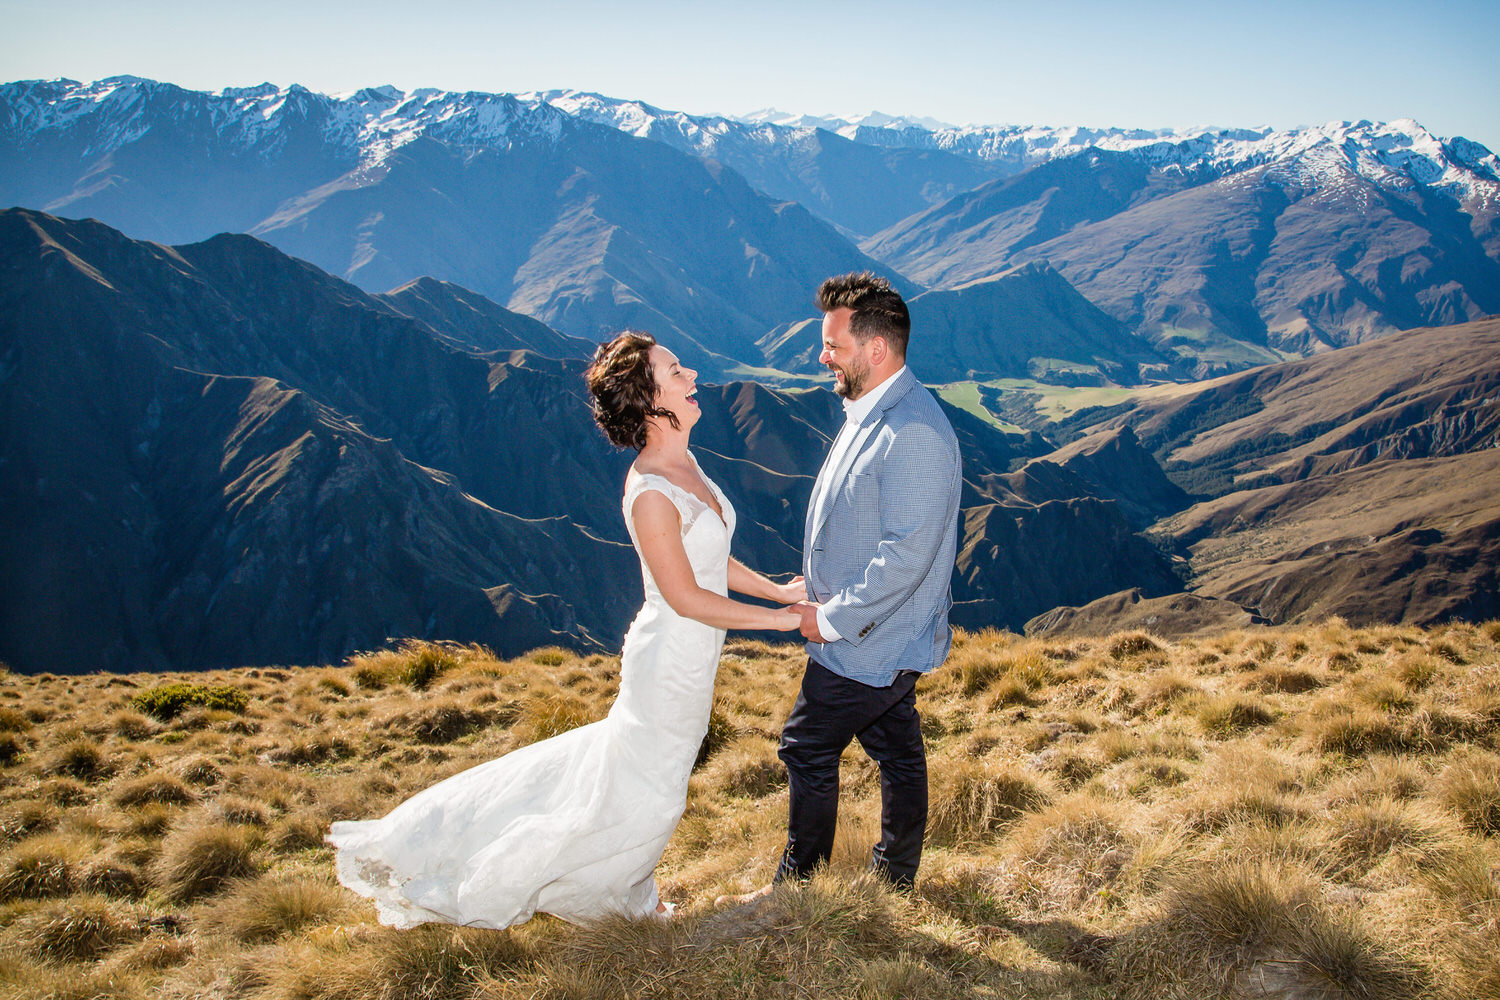 heli-wedding-elopement-wanaka.jpg